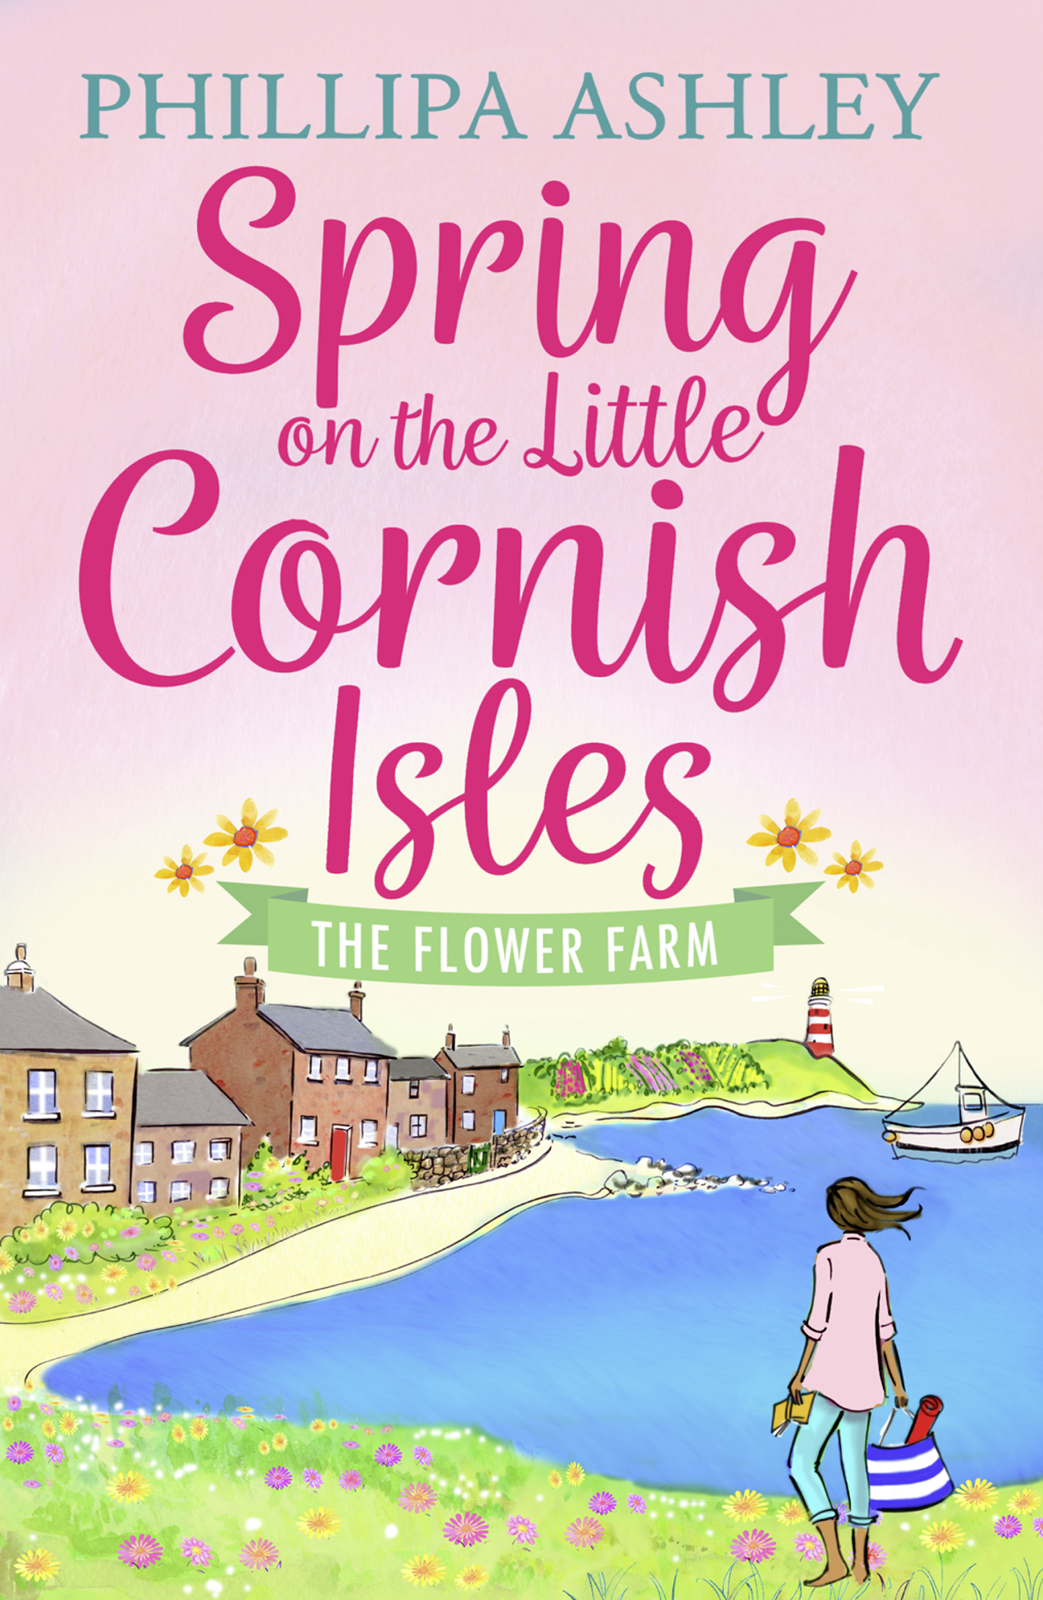 Phillipa Ashley Spring on the Little Cornish Isles: The Flower Farm the british isles cd